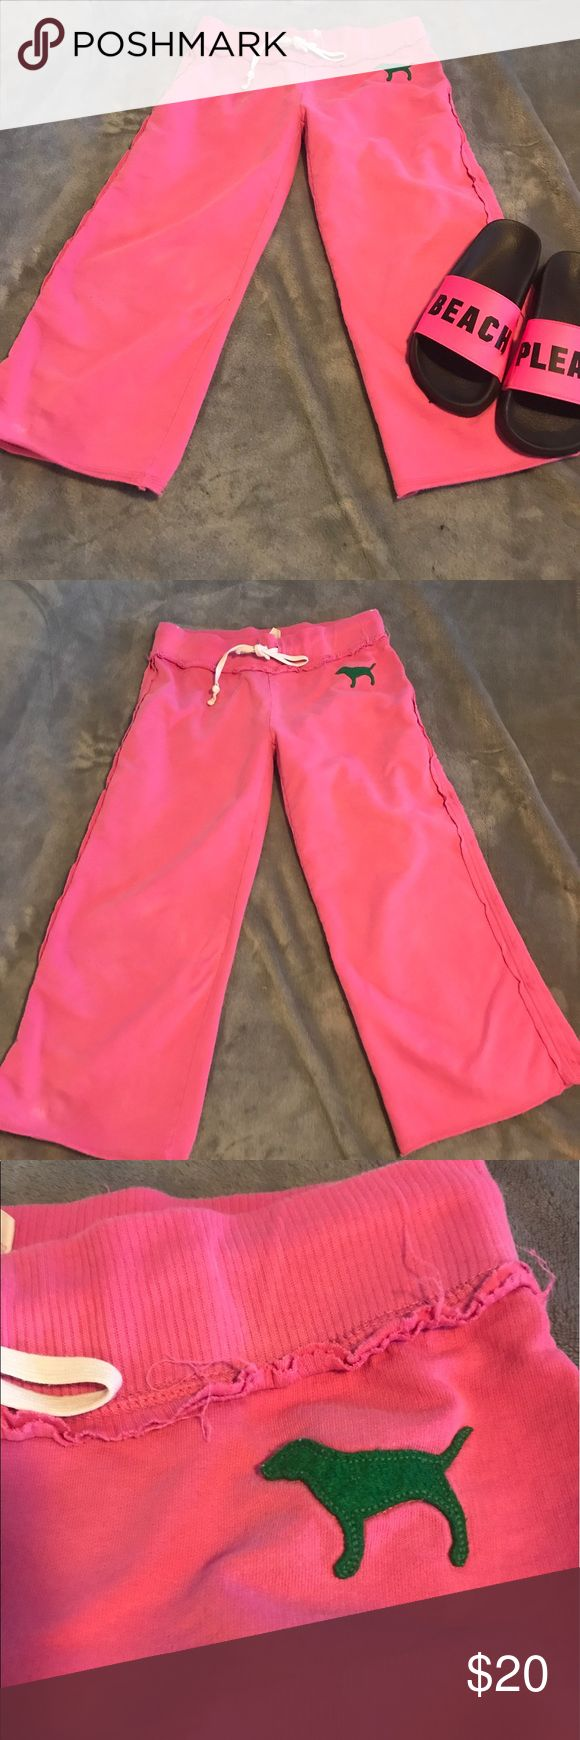 HUGE SALE PINK Victoria Secret size XS pants HUGE 1 DAY SALE ENDS TONIGHT. PRICE IS FIRM PINK Victoria Secret size XS pants. Nice pre loved condition from smoke free home. Last two pics show a few little white spots could most likely be removed in the wash. Shoes are for display only. Bin k PINK Victoria's Secret Pants